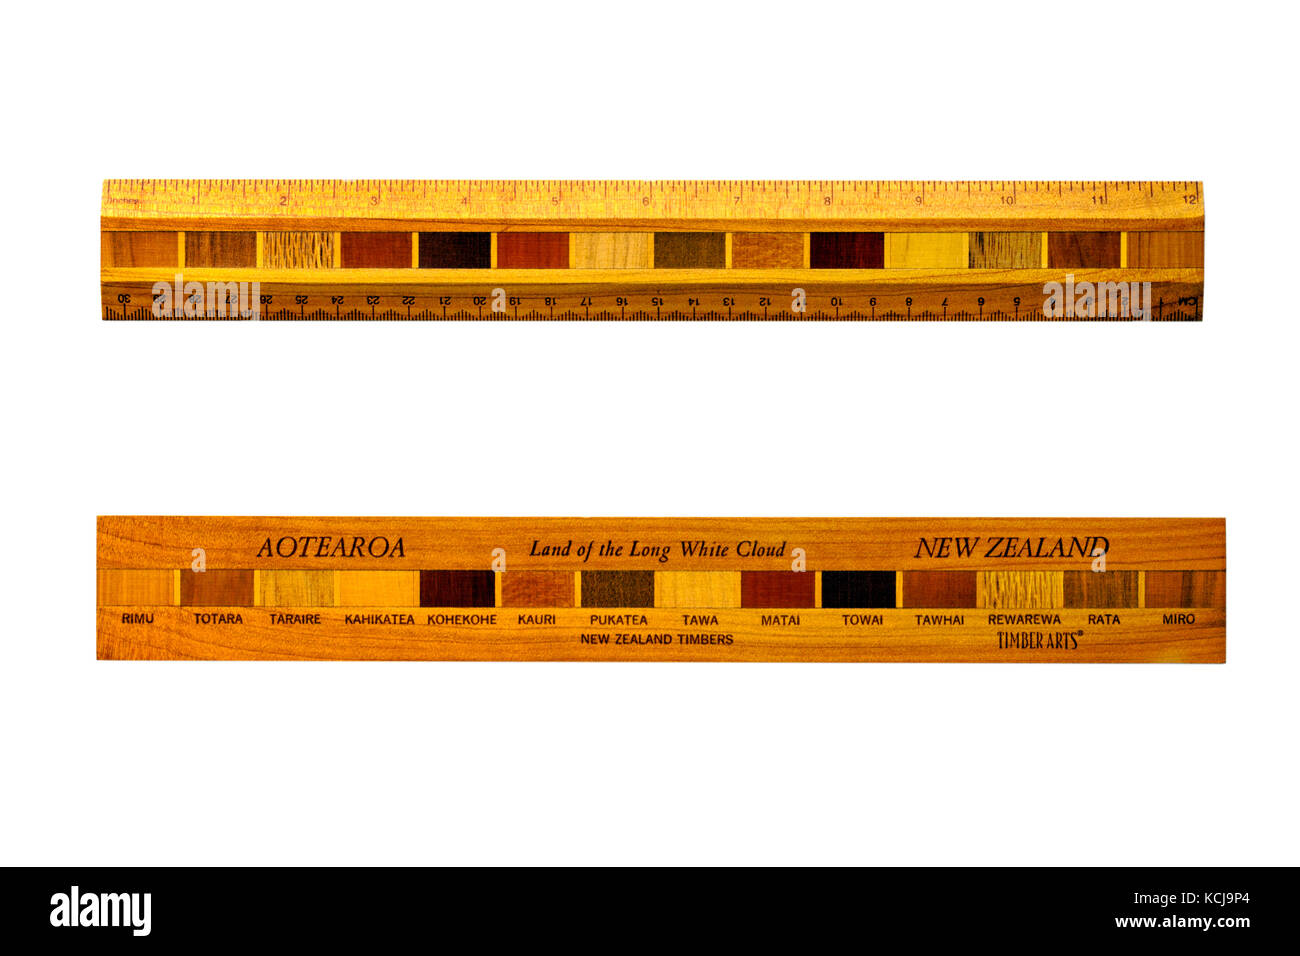 Land of the long white cloud - wooden ruler made with New Zealand timbers showing front and back of ruler - timber - Stock Image